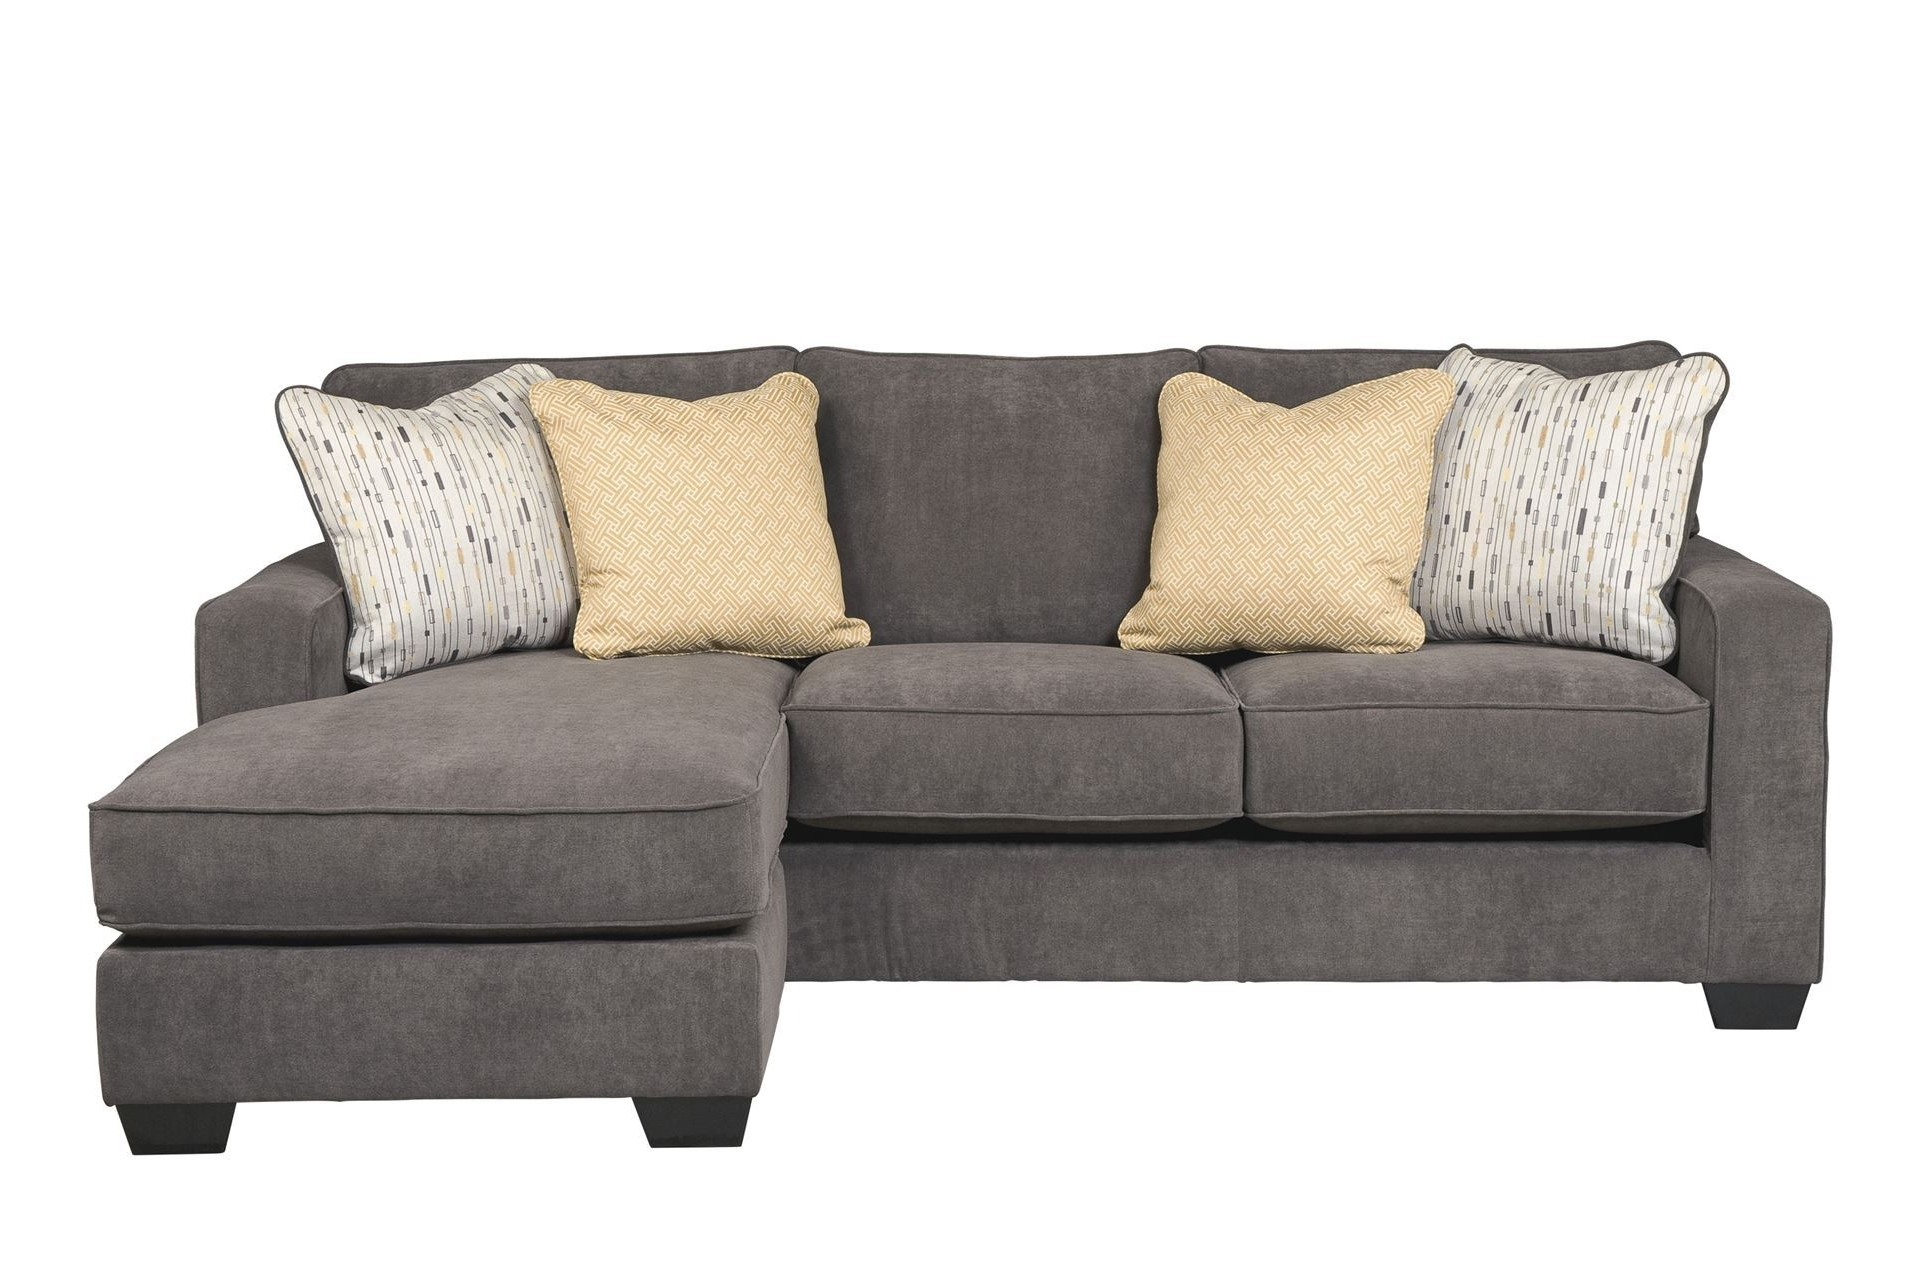 Sofas With Chaise Lounge With Regard To Widely Used Couch With Chaise Lounge – Decofurnish (View 12 of 15)